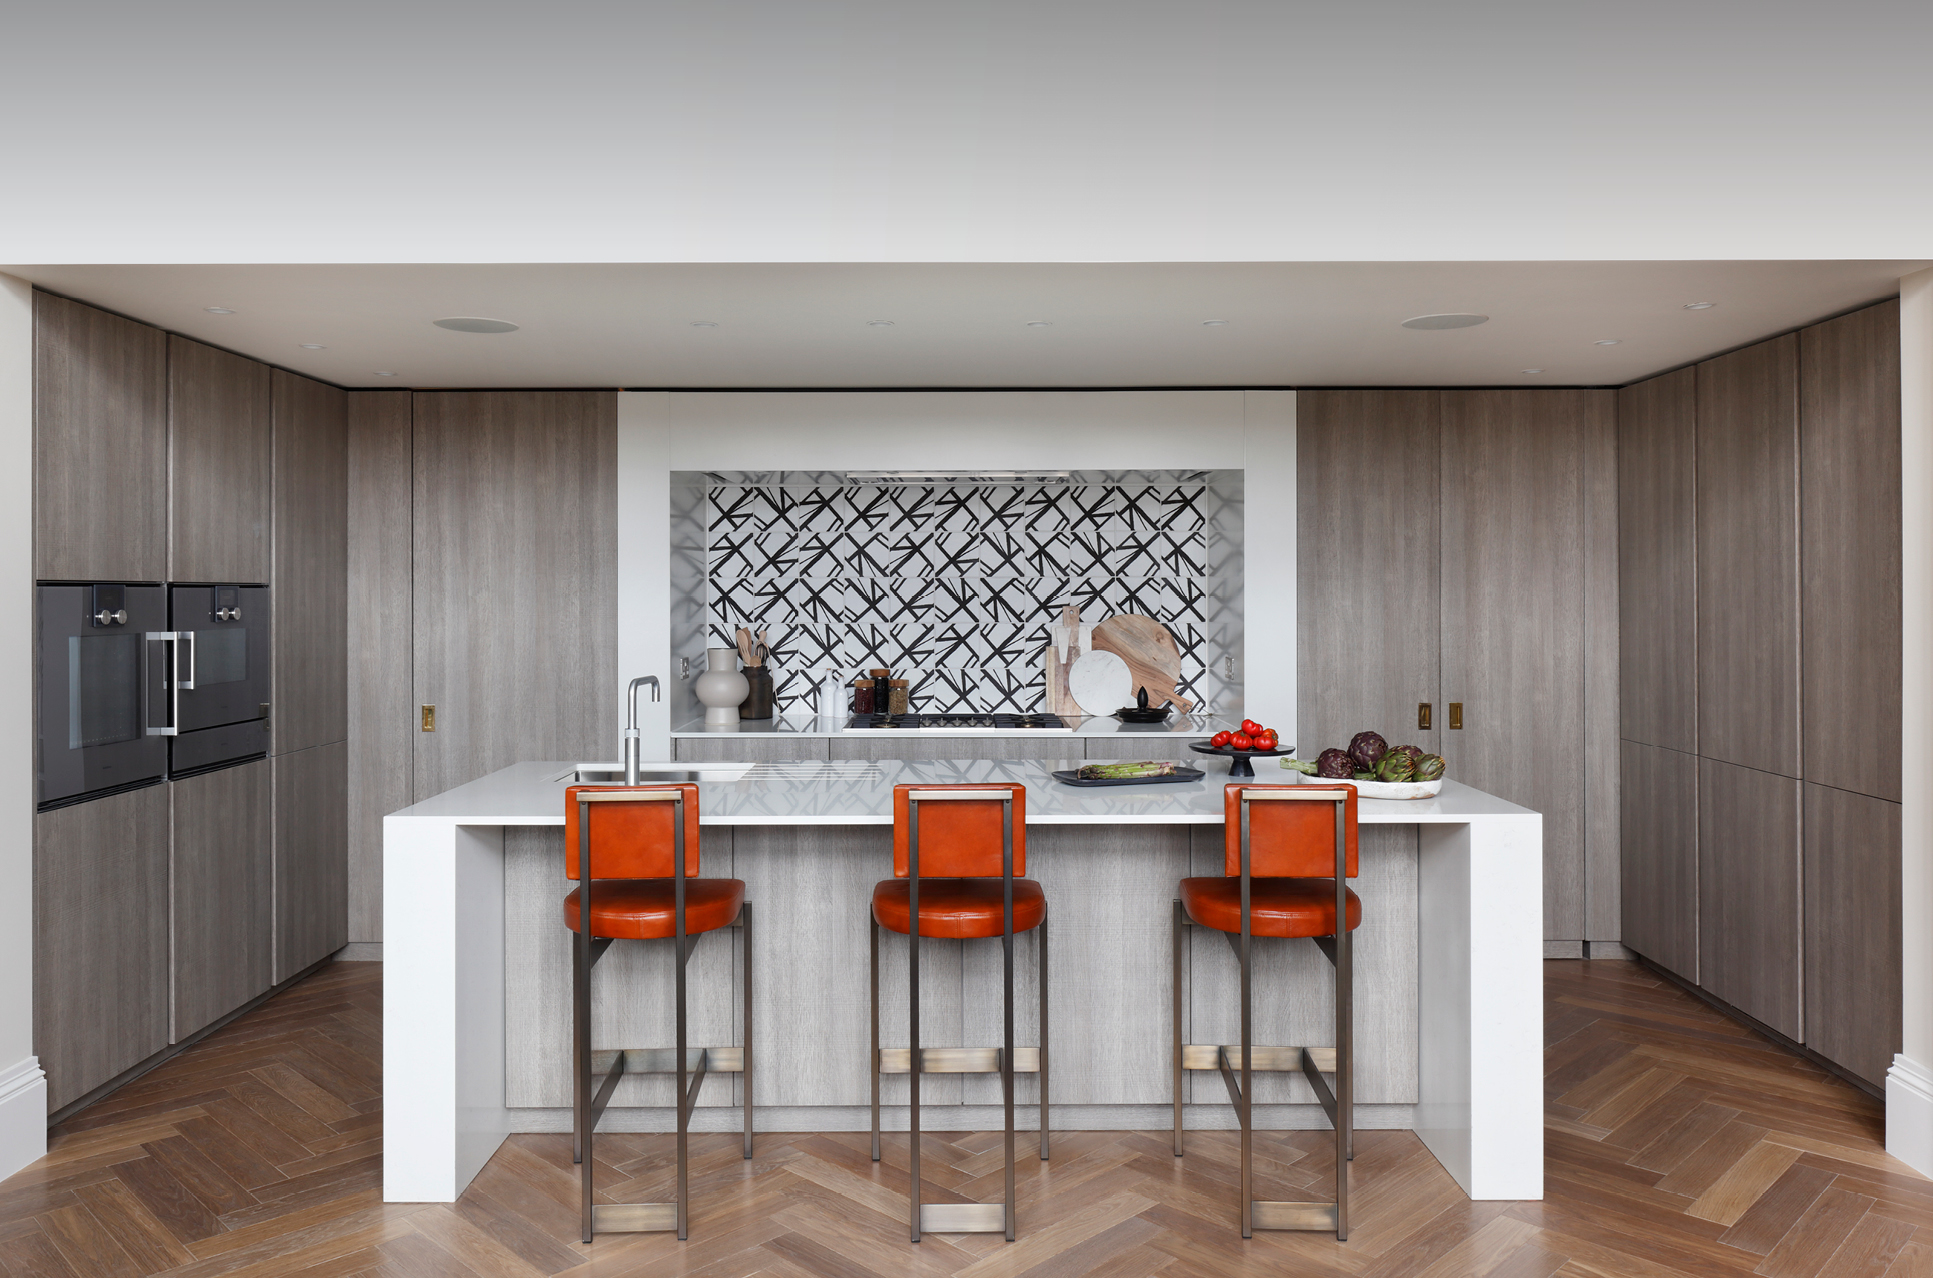 Kube Kitchens, Kitchen remodelling in the UK